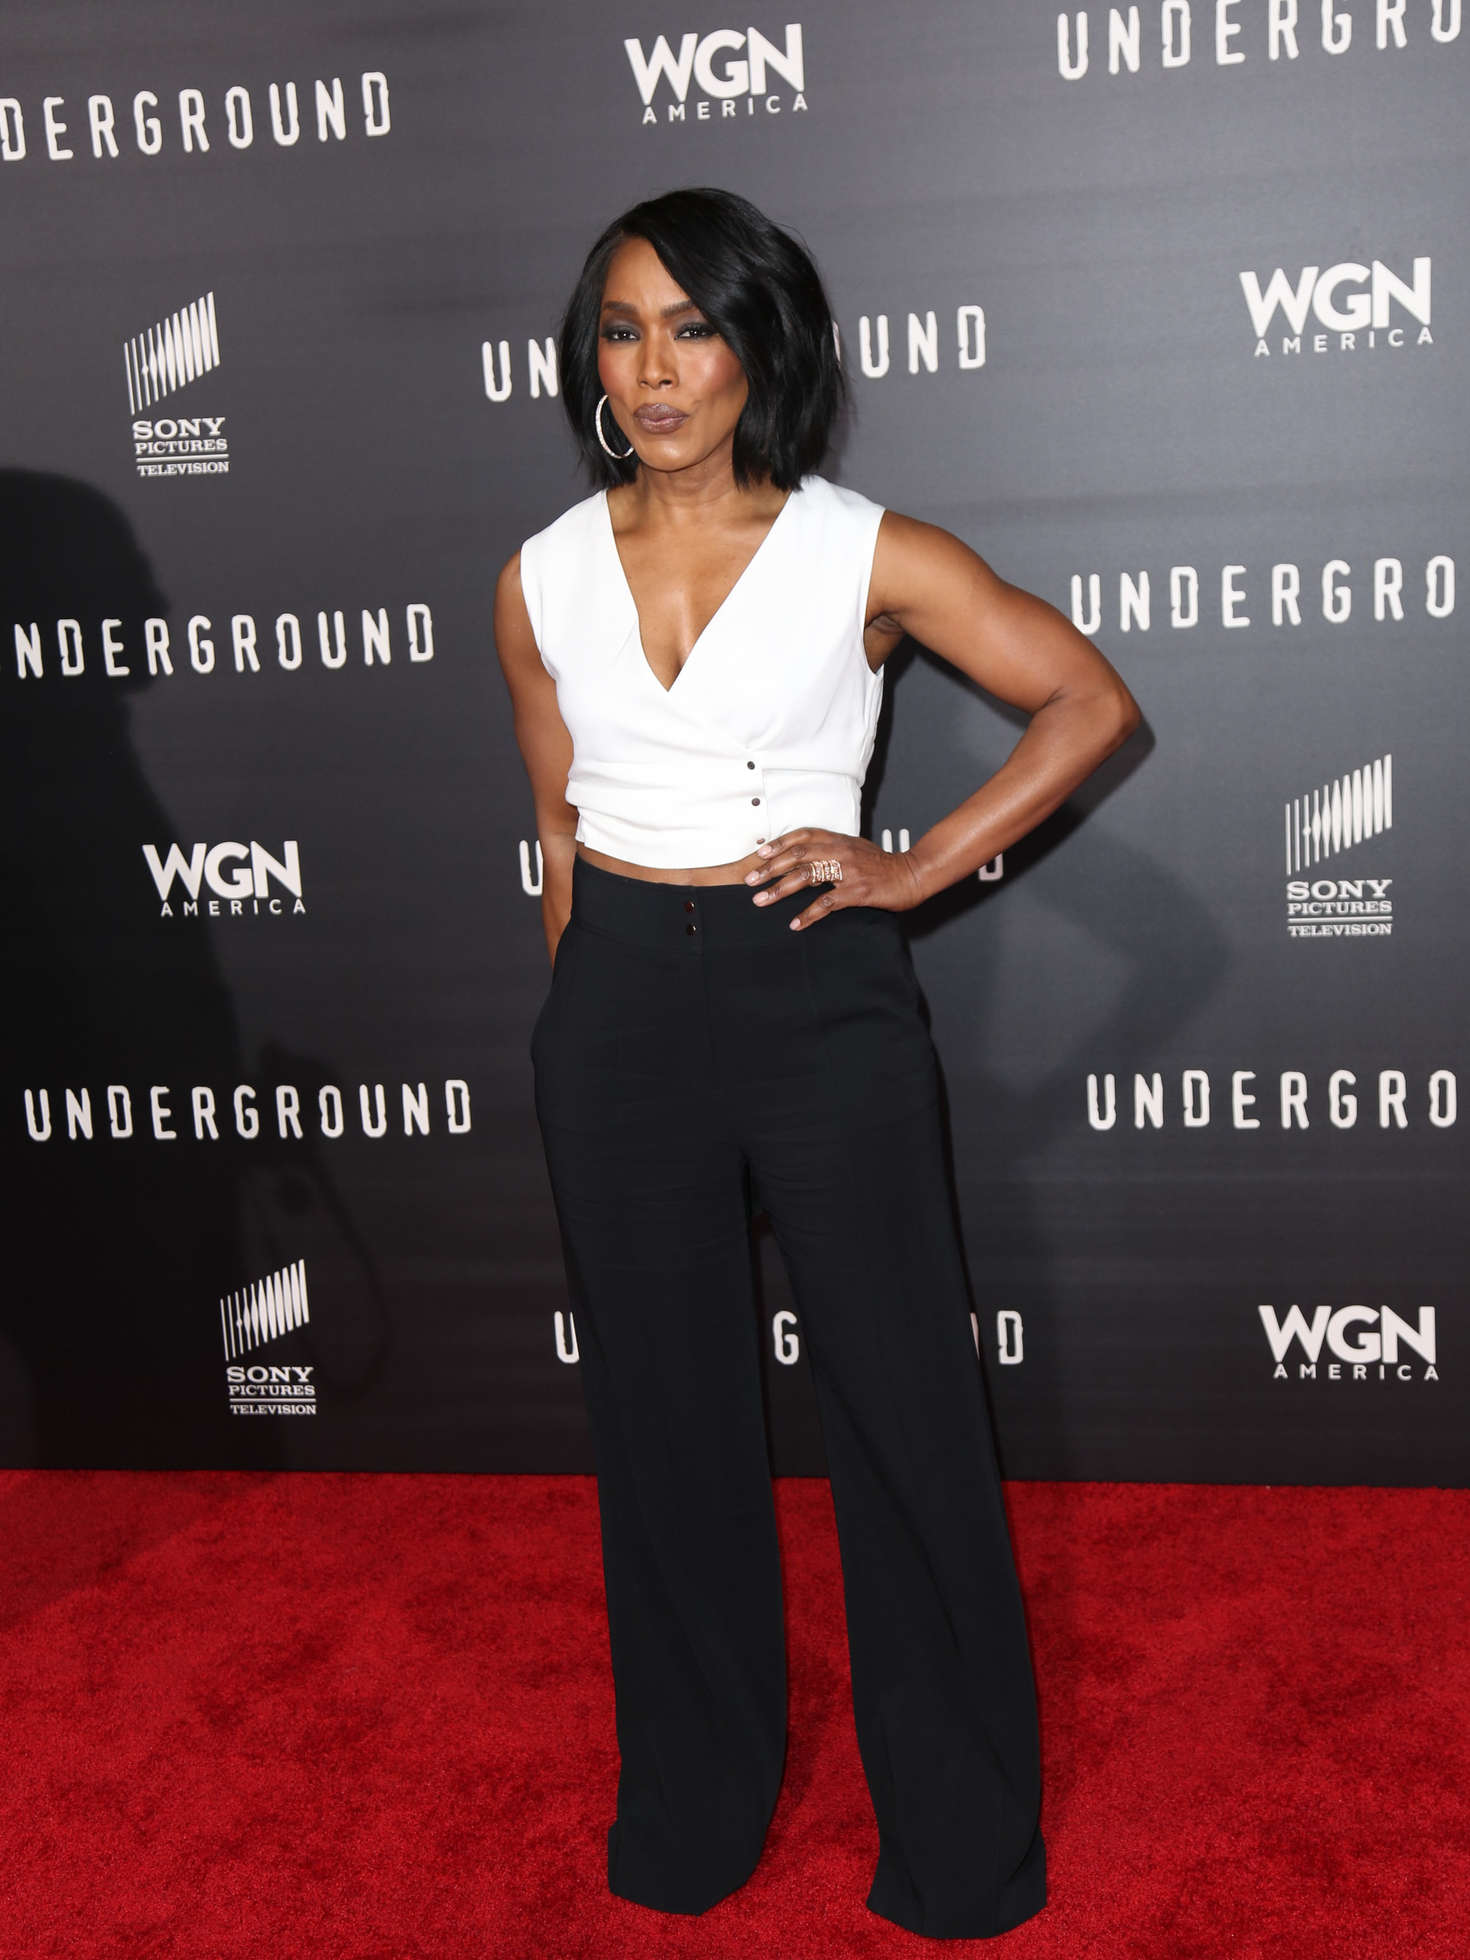 Angela Bassett Underground Premiere in Los Angeles